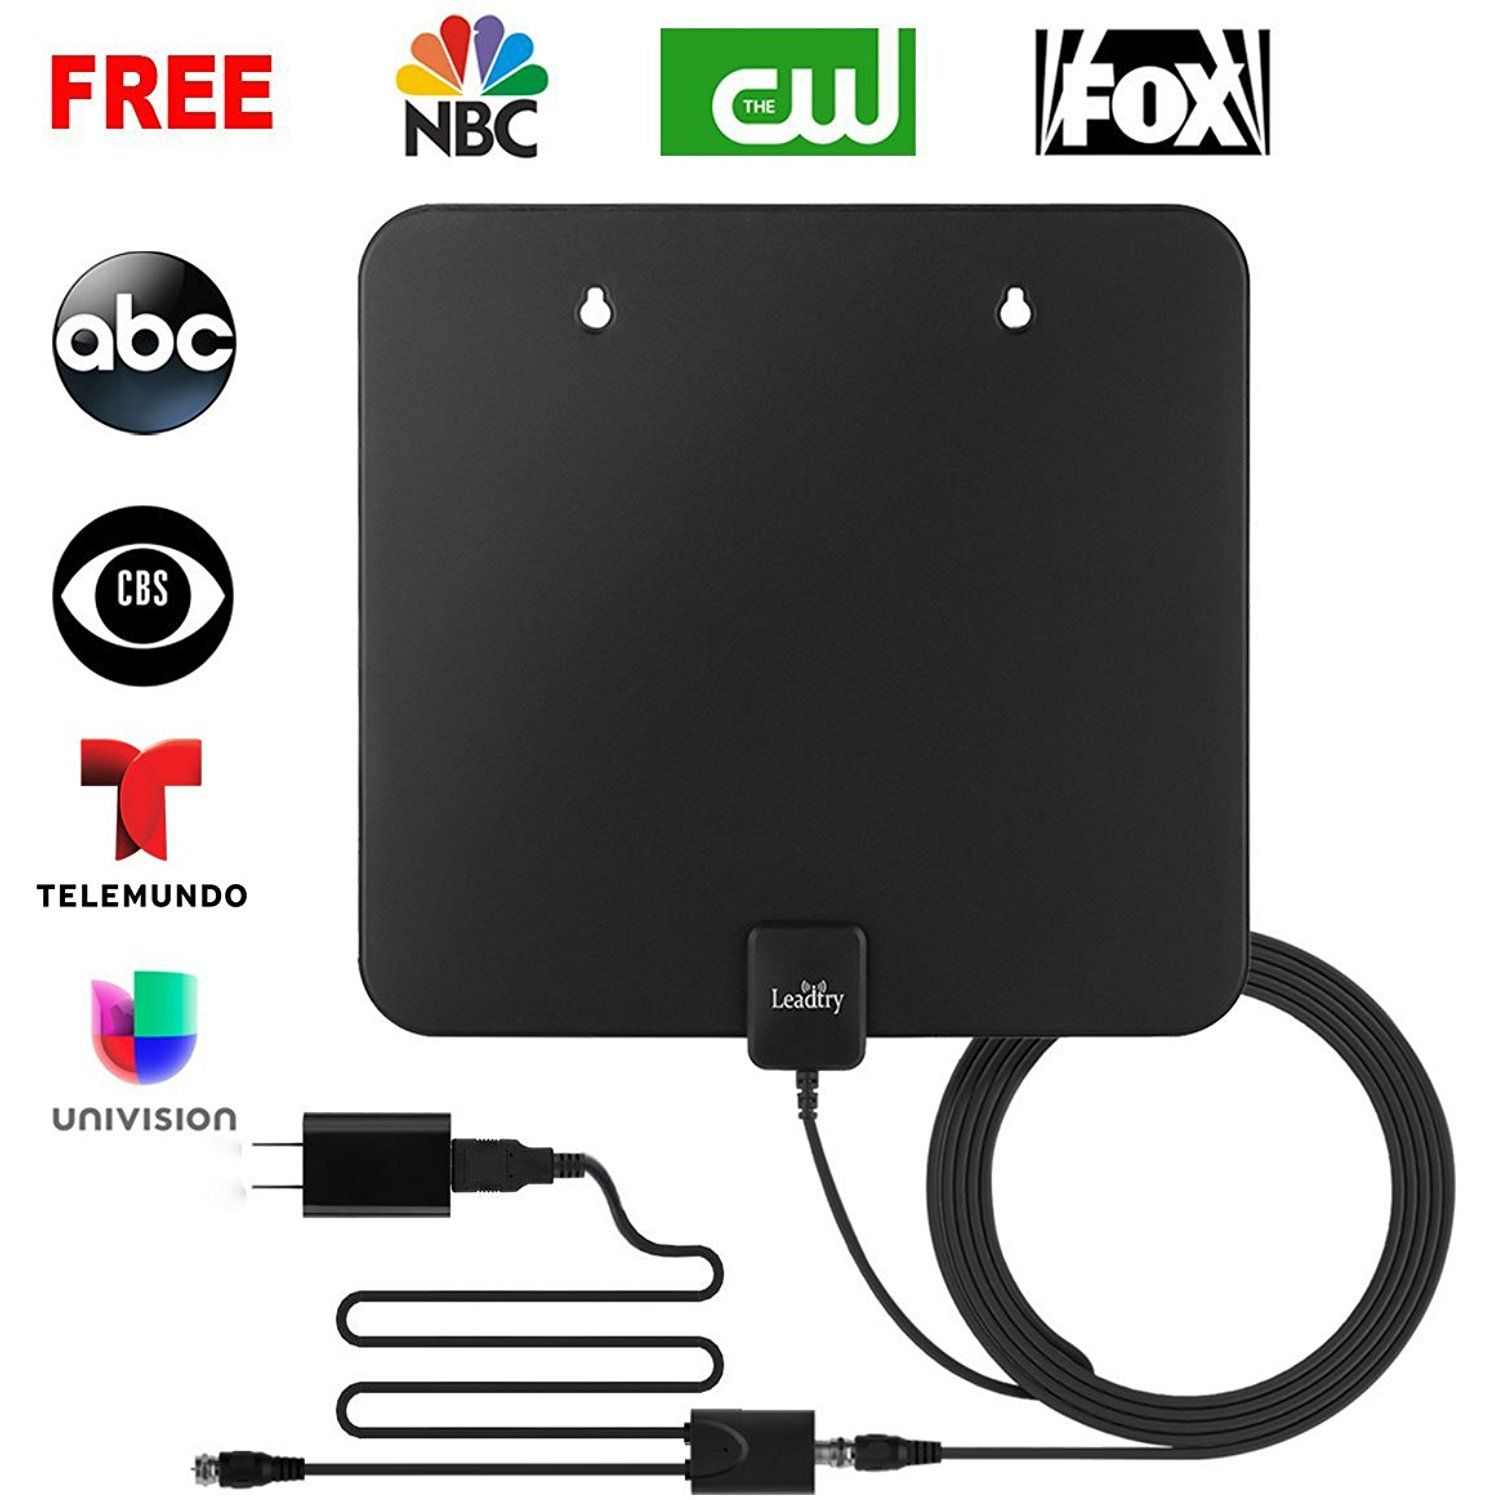 Amplified HDTV Antenna Indoor 50+mi Range OTA Free TV Channels for Cord Cutters